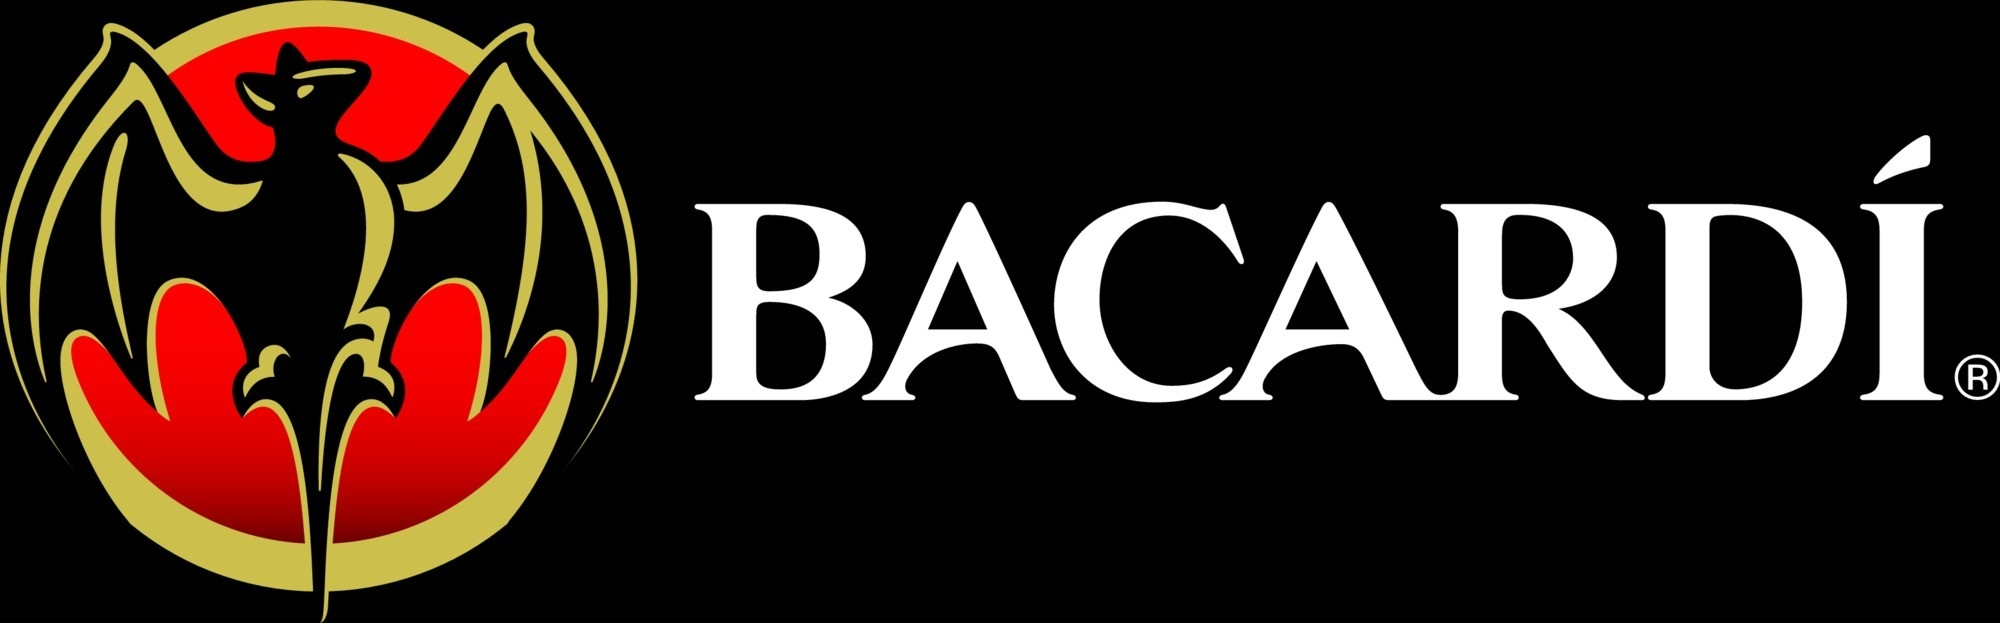 Gallery images and information: Bacardi Logo 2014